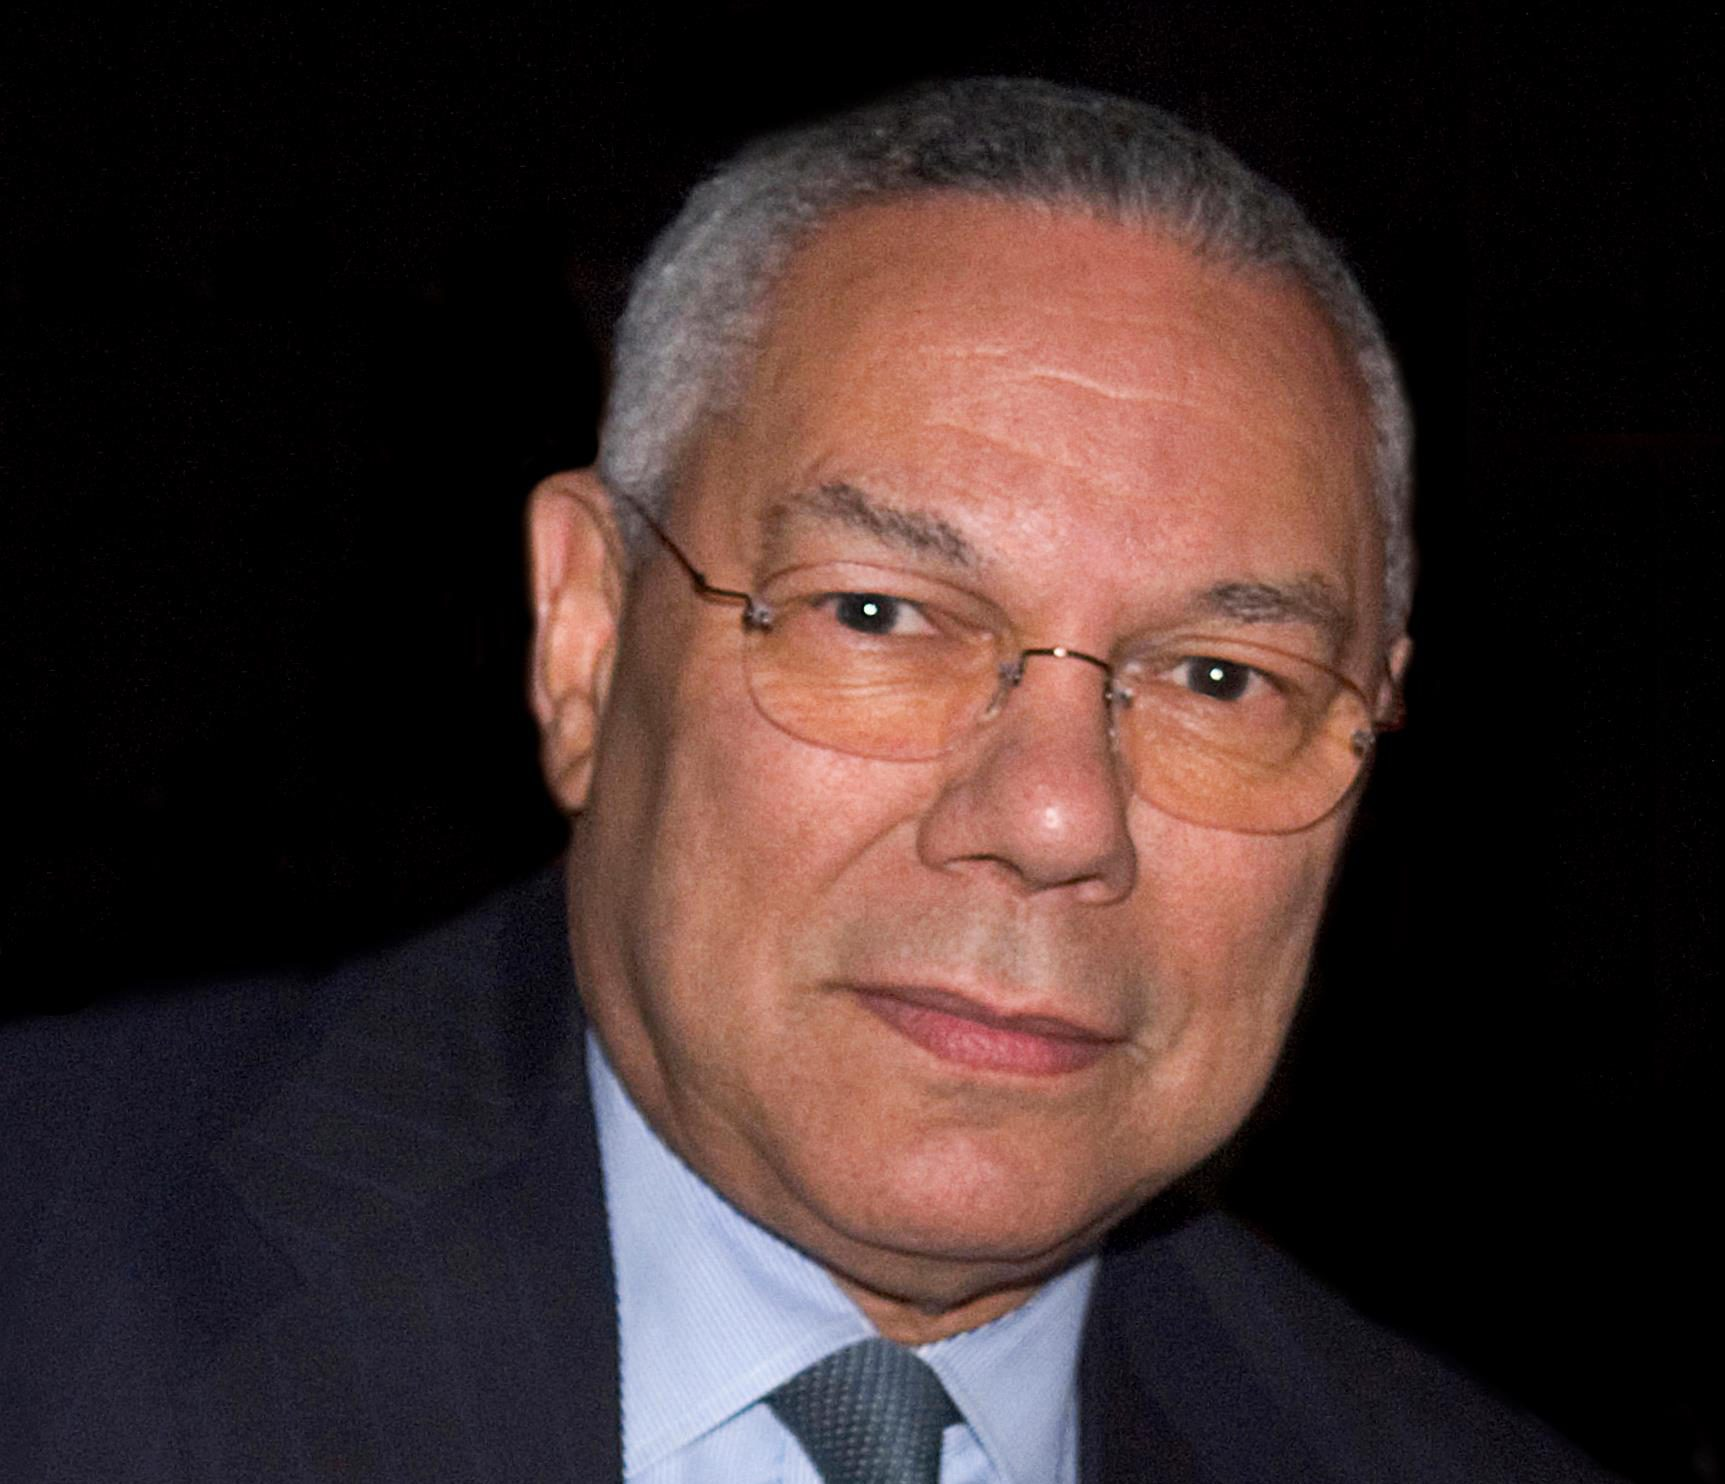 Colin Powell, former US Secretary of State, dies of COVID complications aged 84